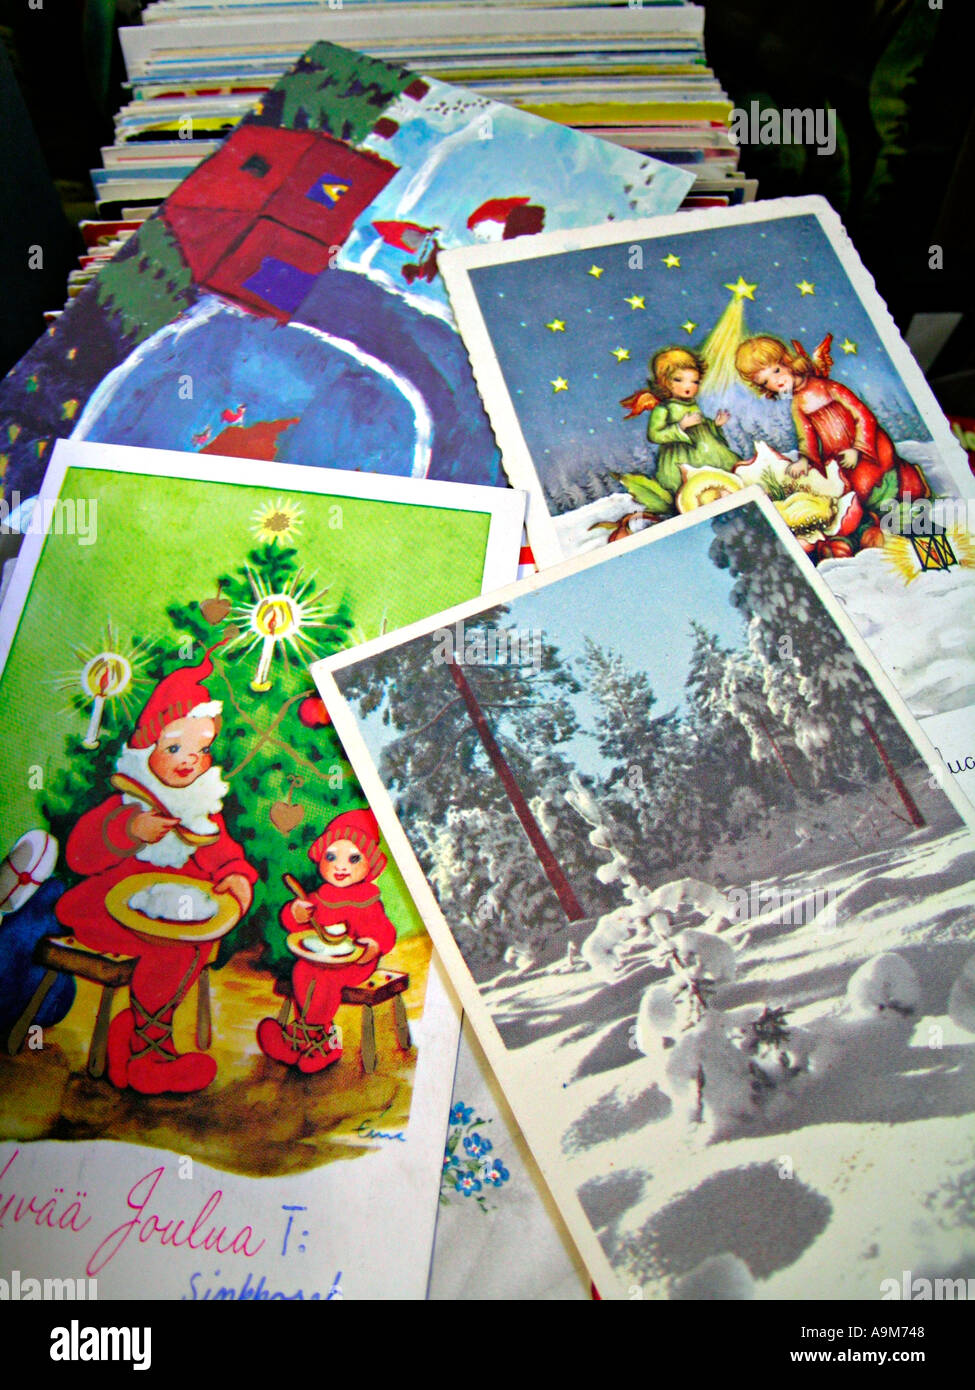 Old Fashioned Christmas Card Stock Photos & Old Fashioned Christmas ...